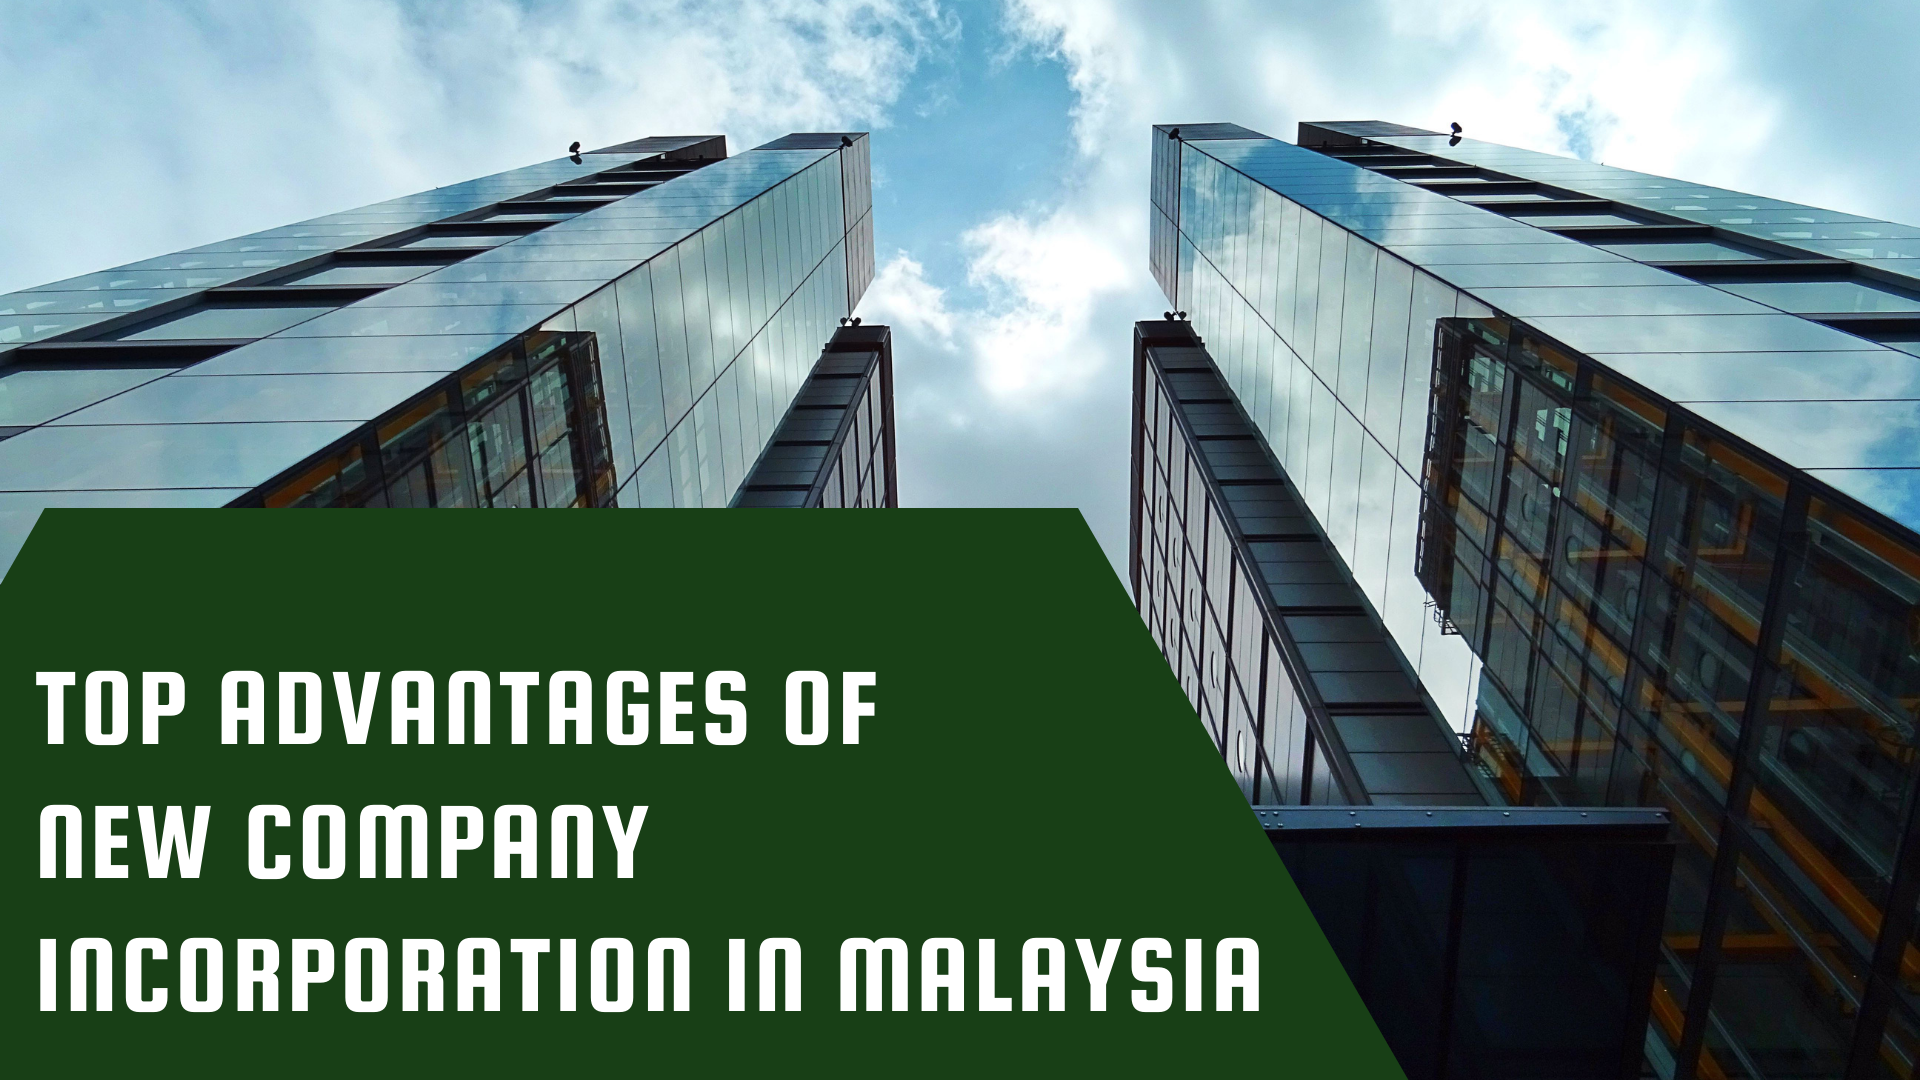 Top Advantages of New Company Incorporation in Malaysia